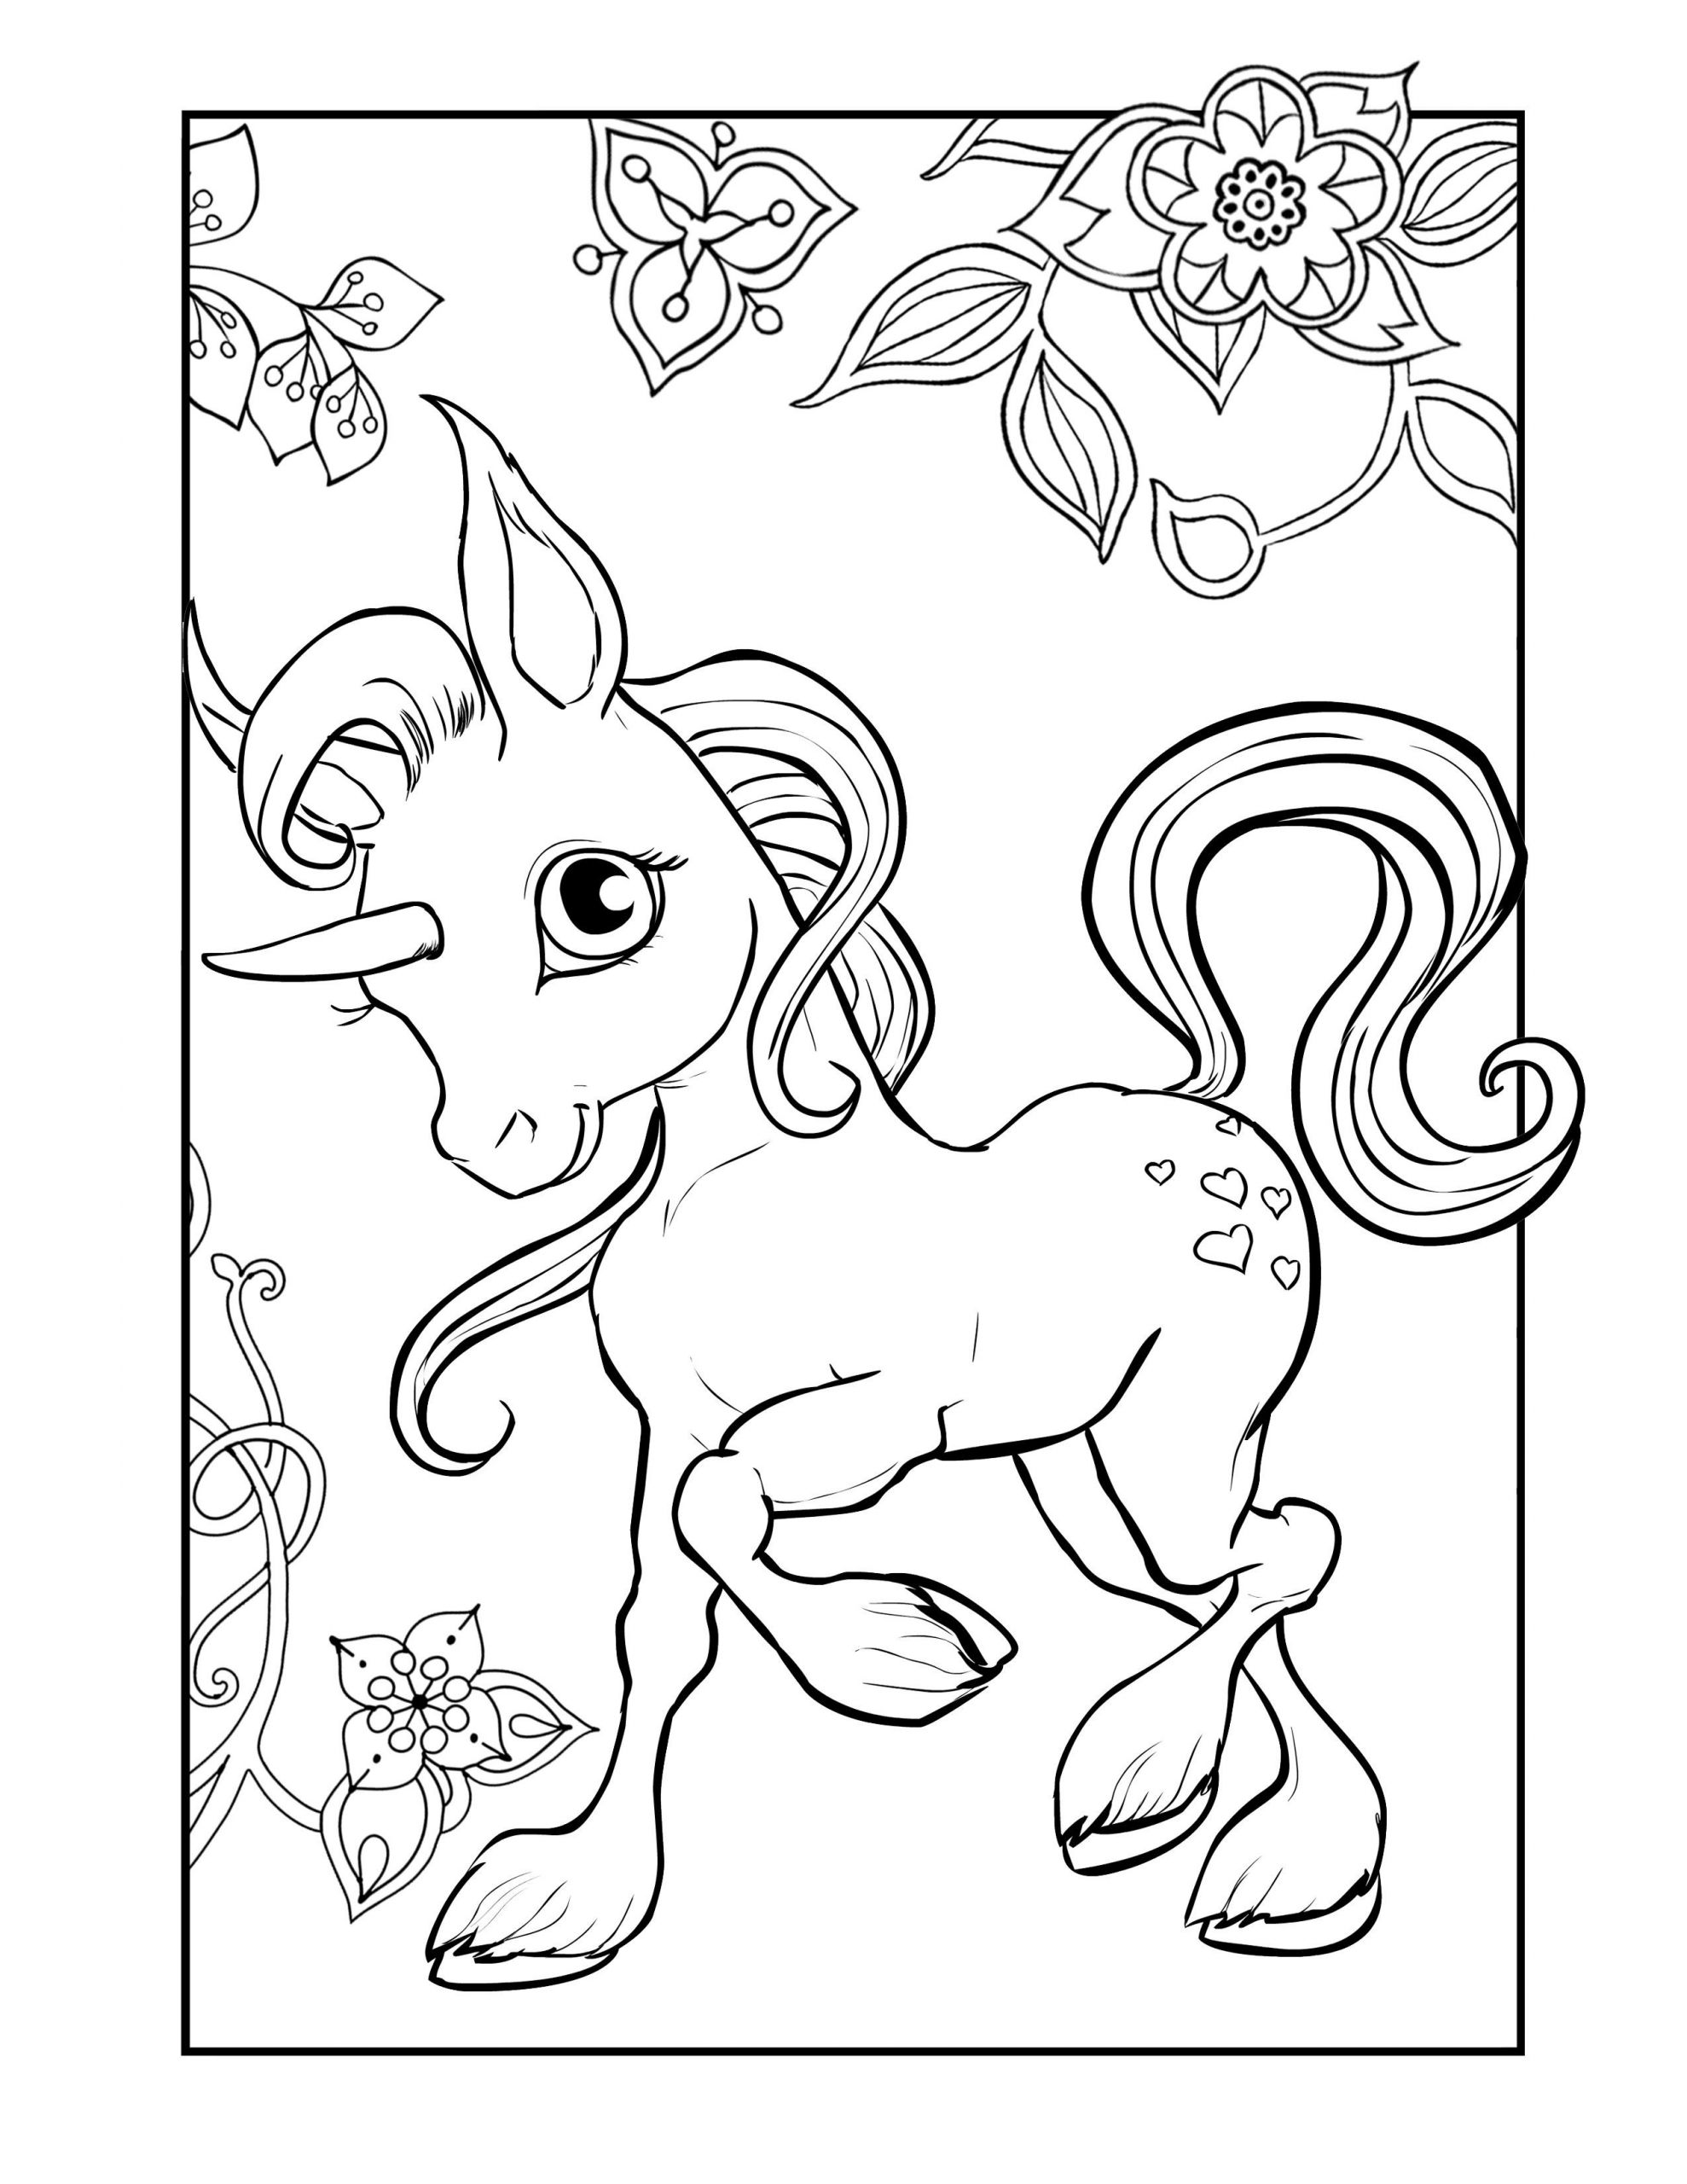 coloring worksheets unicorn cute unicorn with watermelon coloring pages for you coloring unicorn worksheets